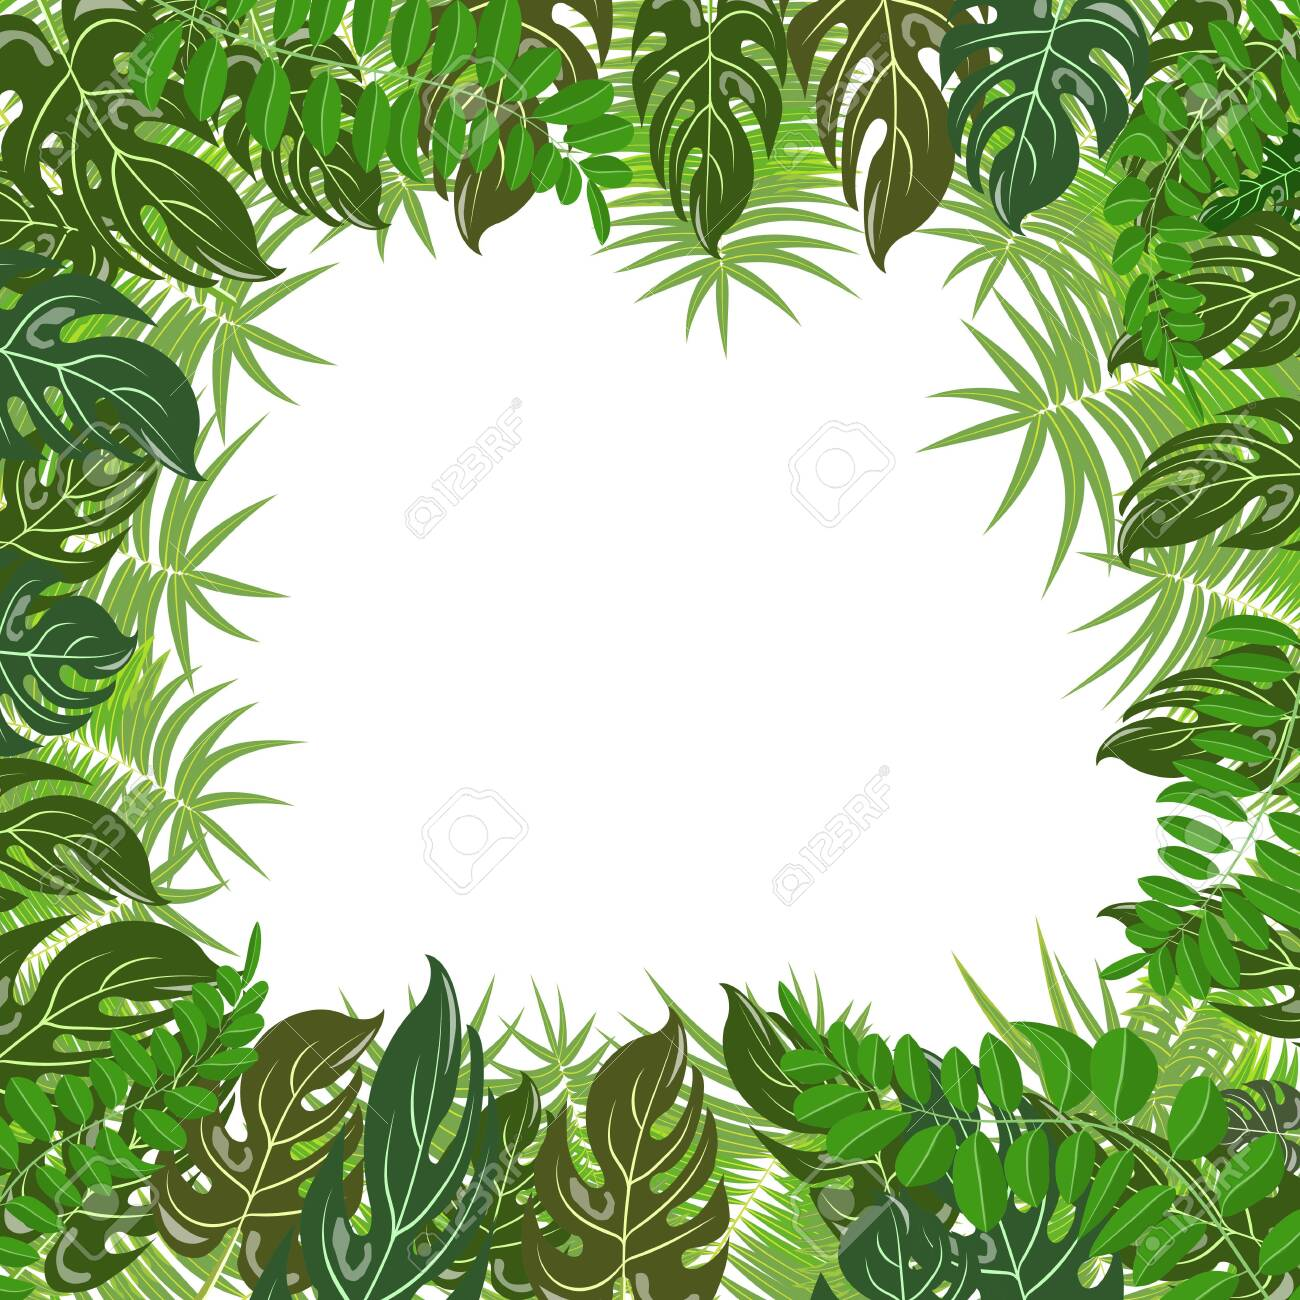 Trendy tropical leaves nature vector poster background - 151697708